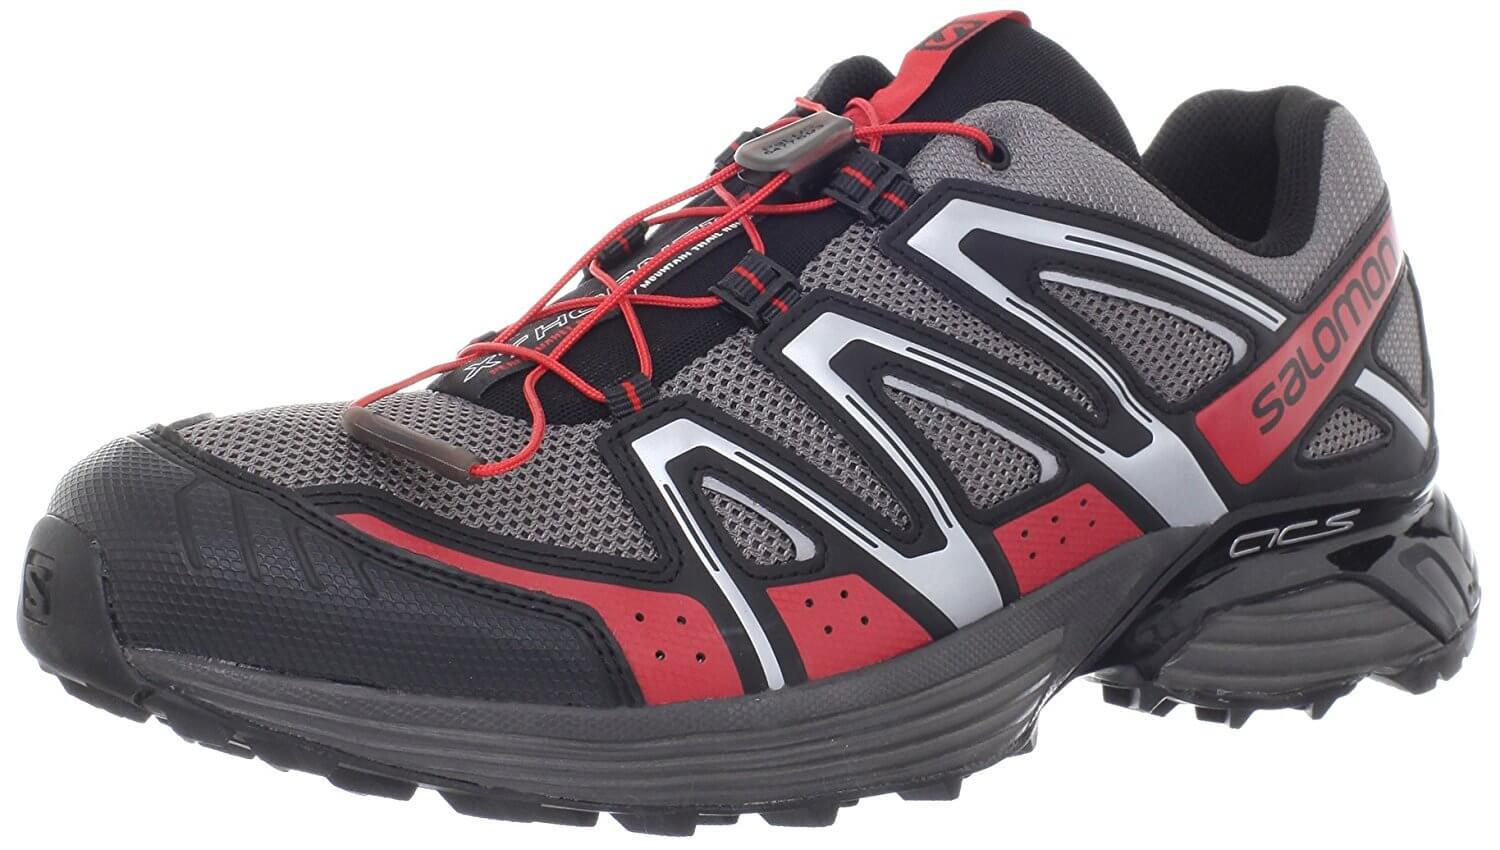 size 40 b4639 0b89f Salomon XT Hornet Reviewed - To Buy or Not in June 2019